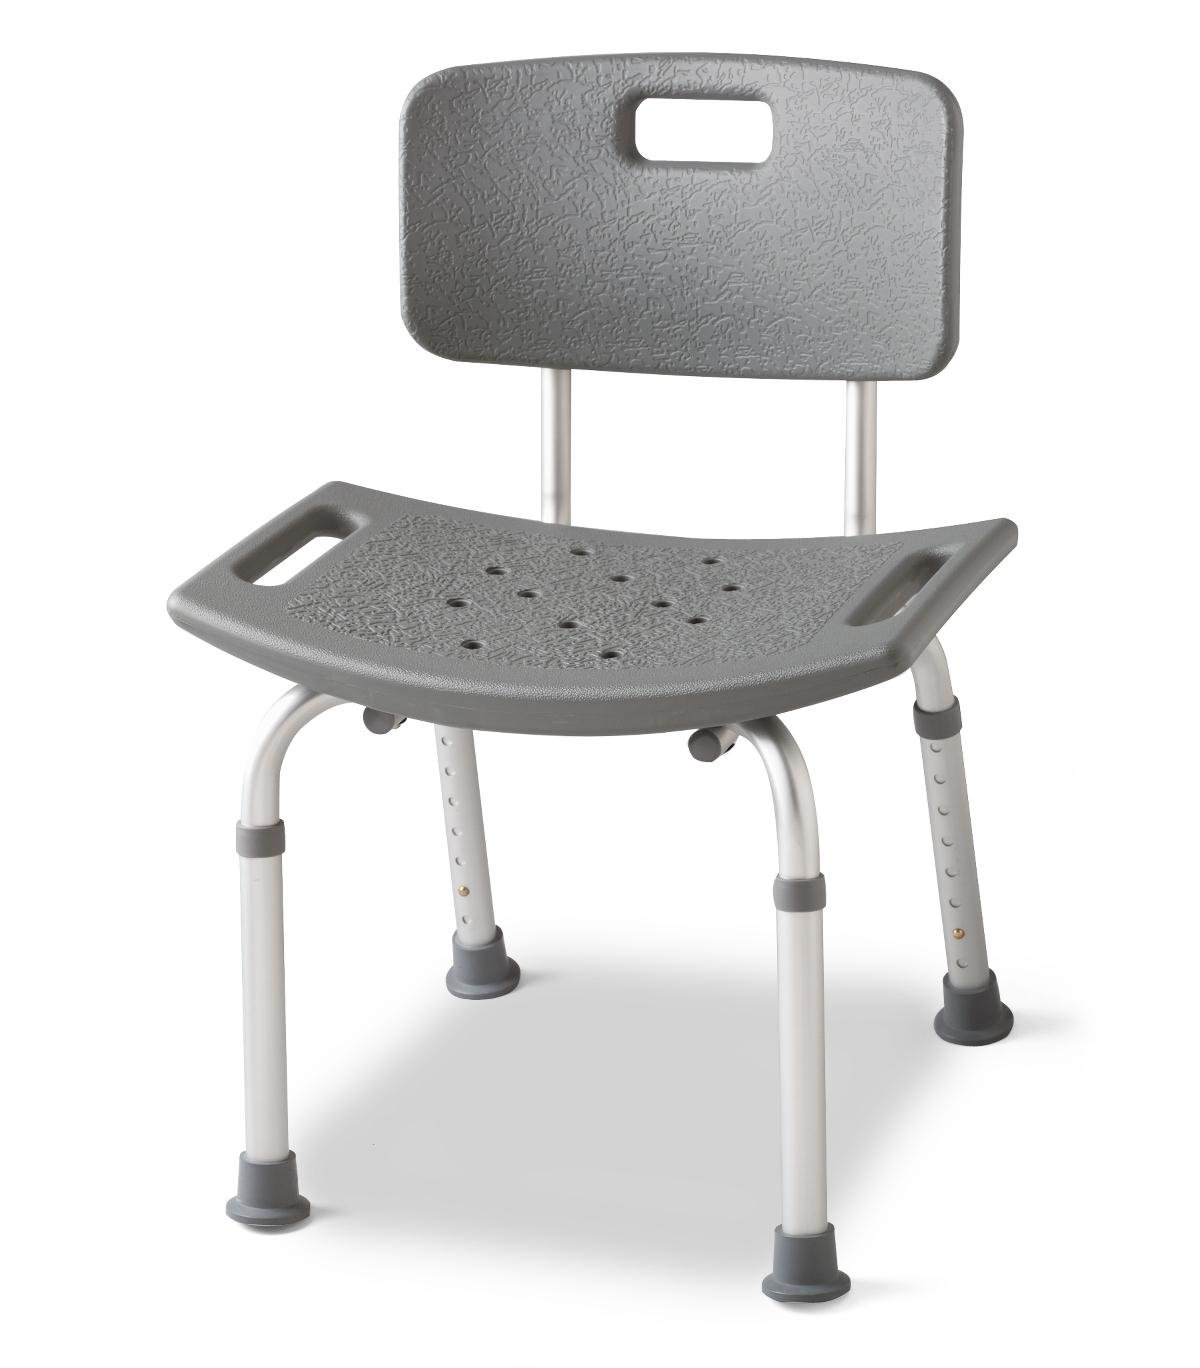 Medline Guardian Bath Bench with Back by Medline